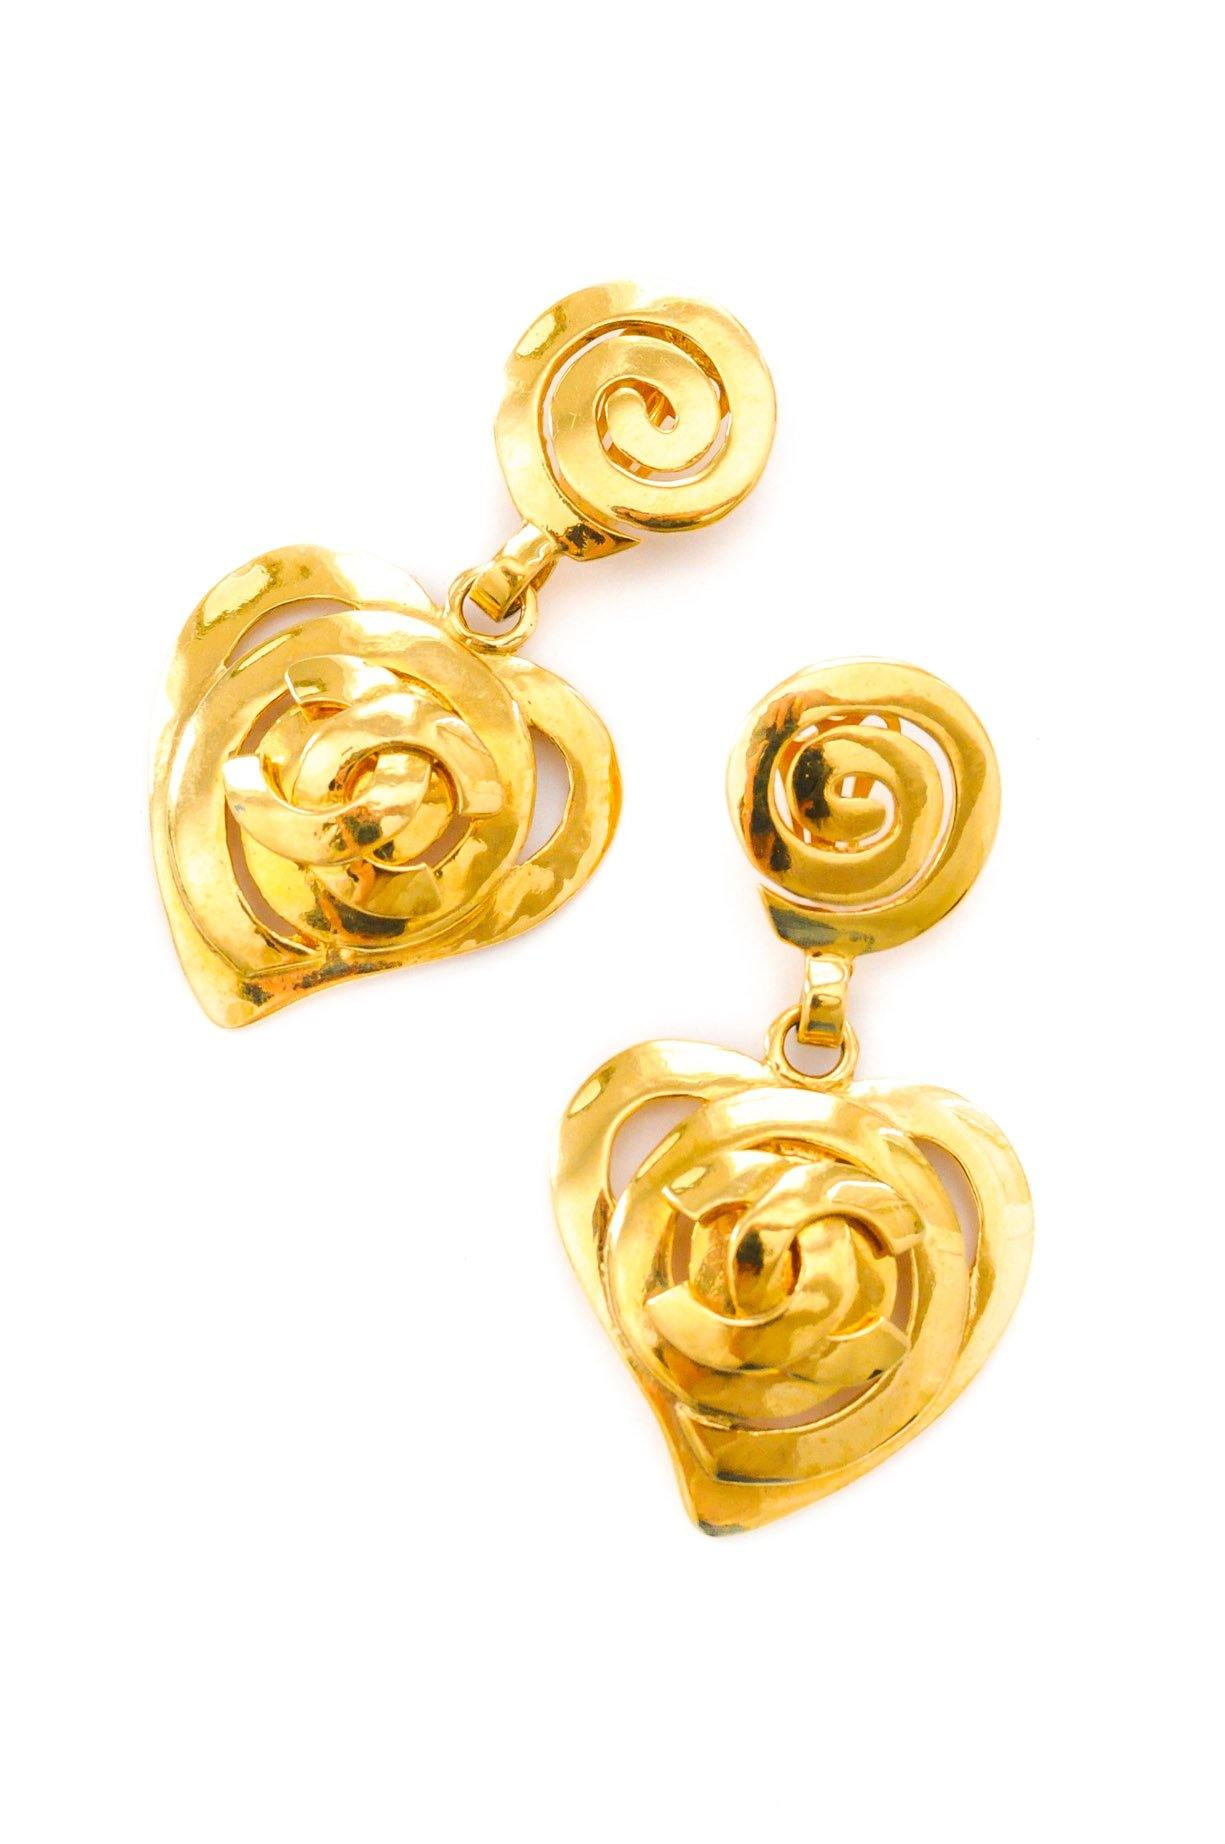 Chanel Heart Statement Clip-on Earrings